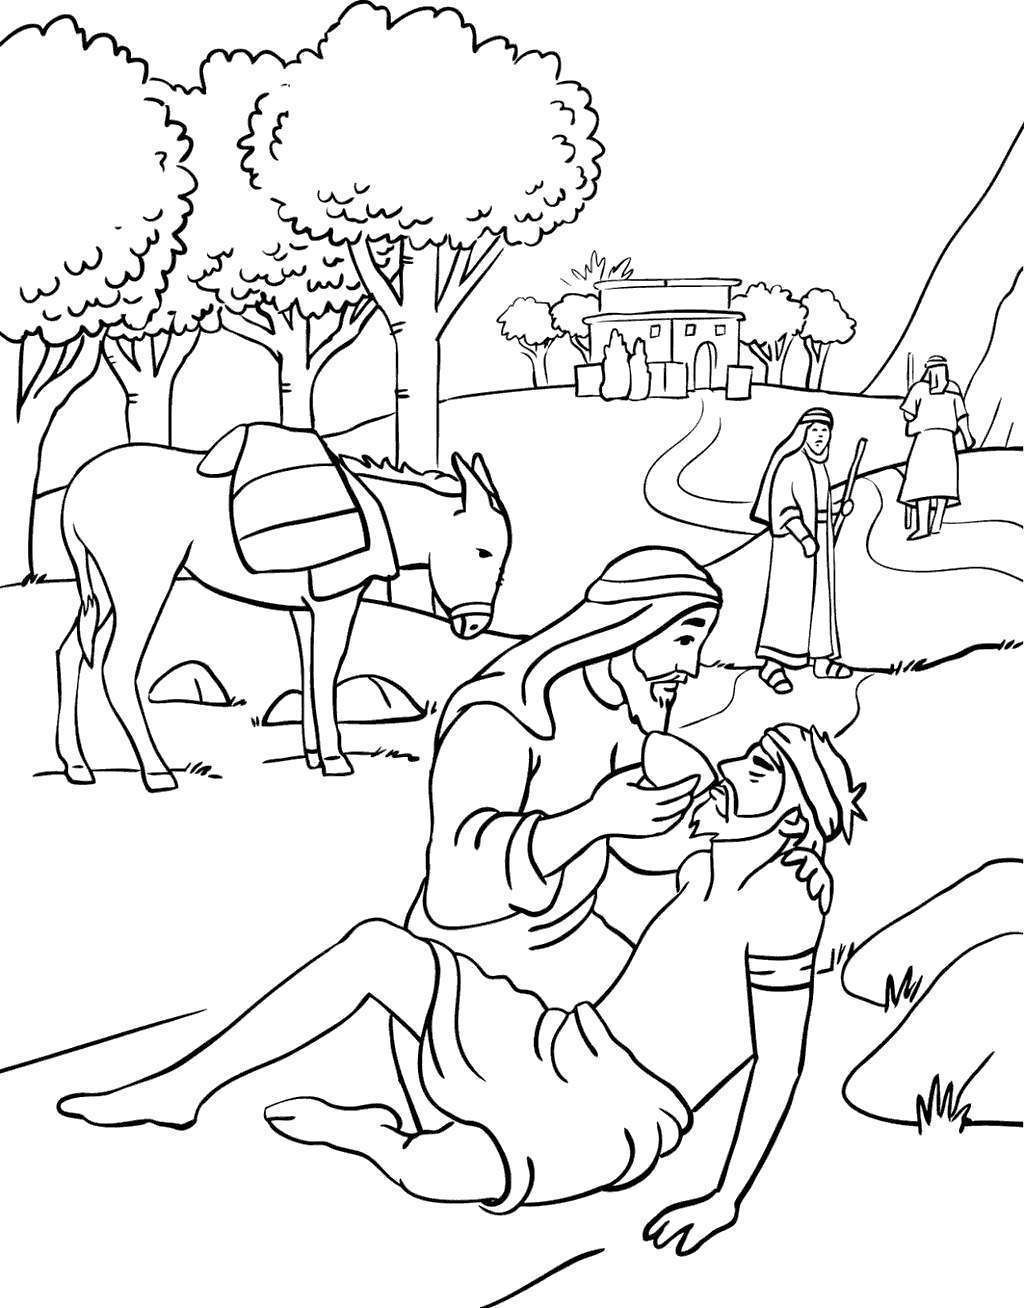 Free The Good Samaritan Coloring Pages Mormon Doodles printable